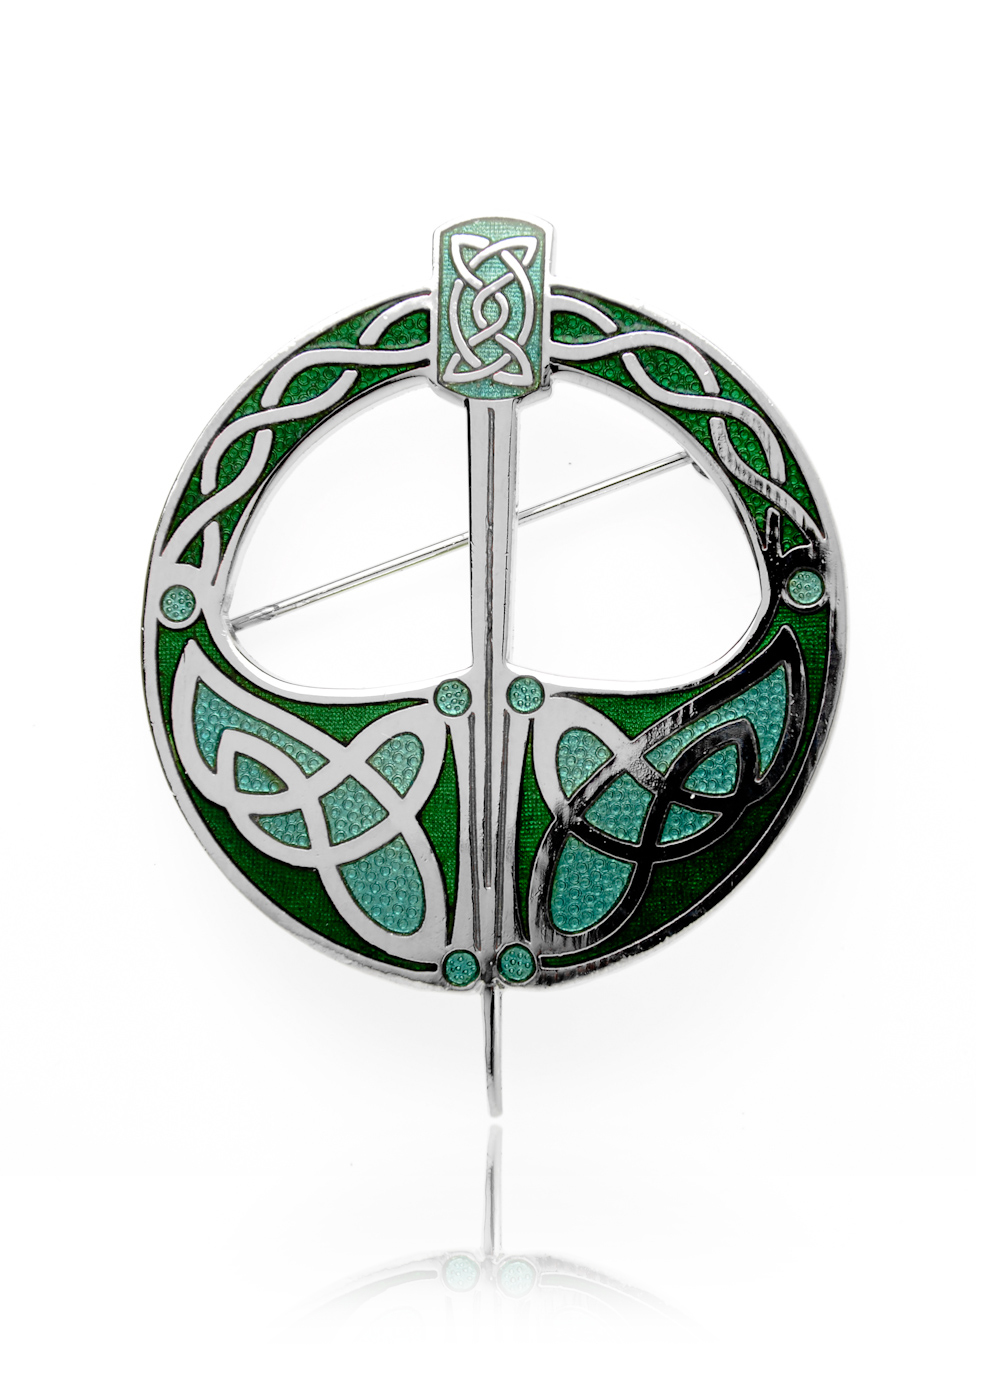 celtic online penannular buy subcultures playing brooch fibula handmade item shop with on jasper livemaster role